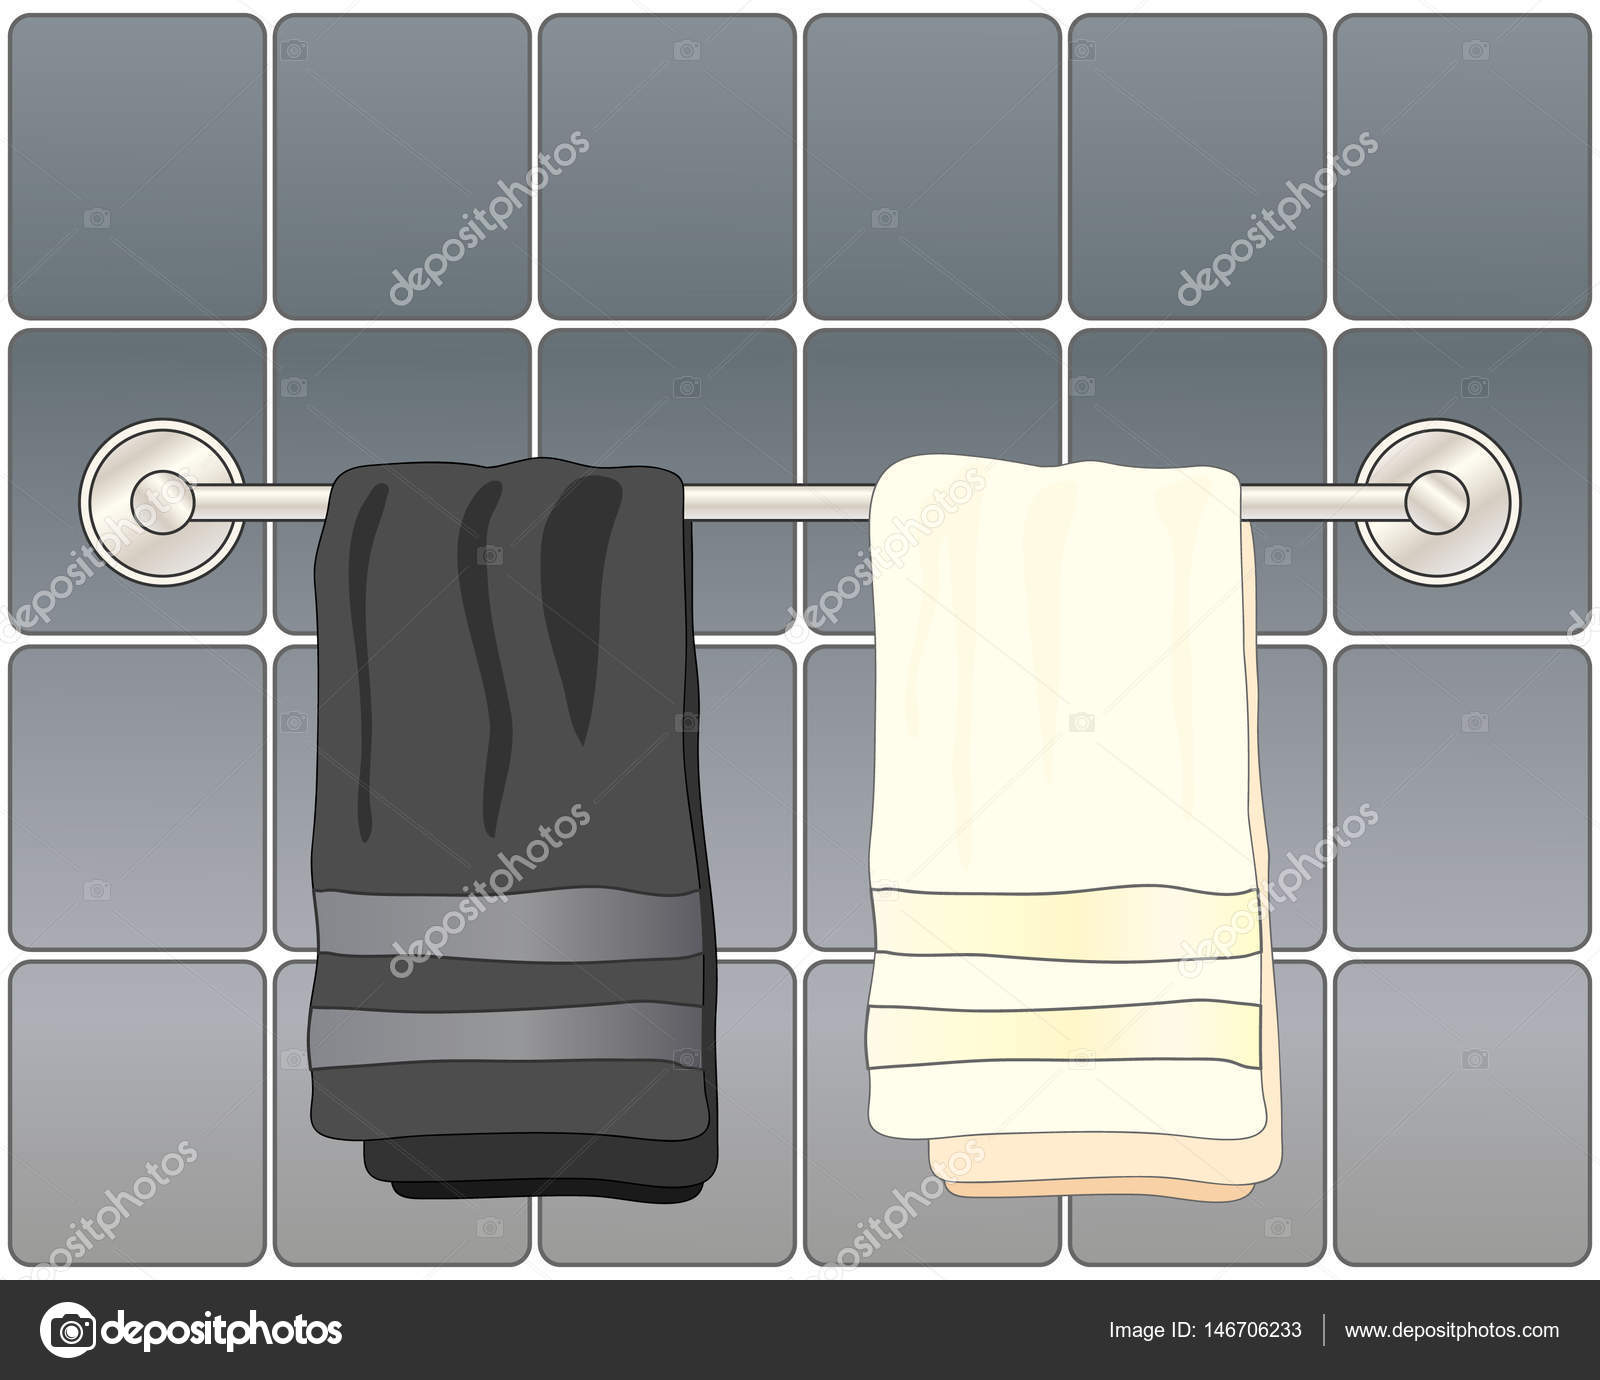 a vector illustration in eps 10 format of black and white bathroom towels on a metallic towel rail with gray ceramic tiles vector van sandesh1264